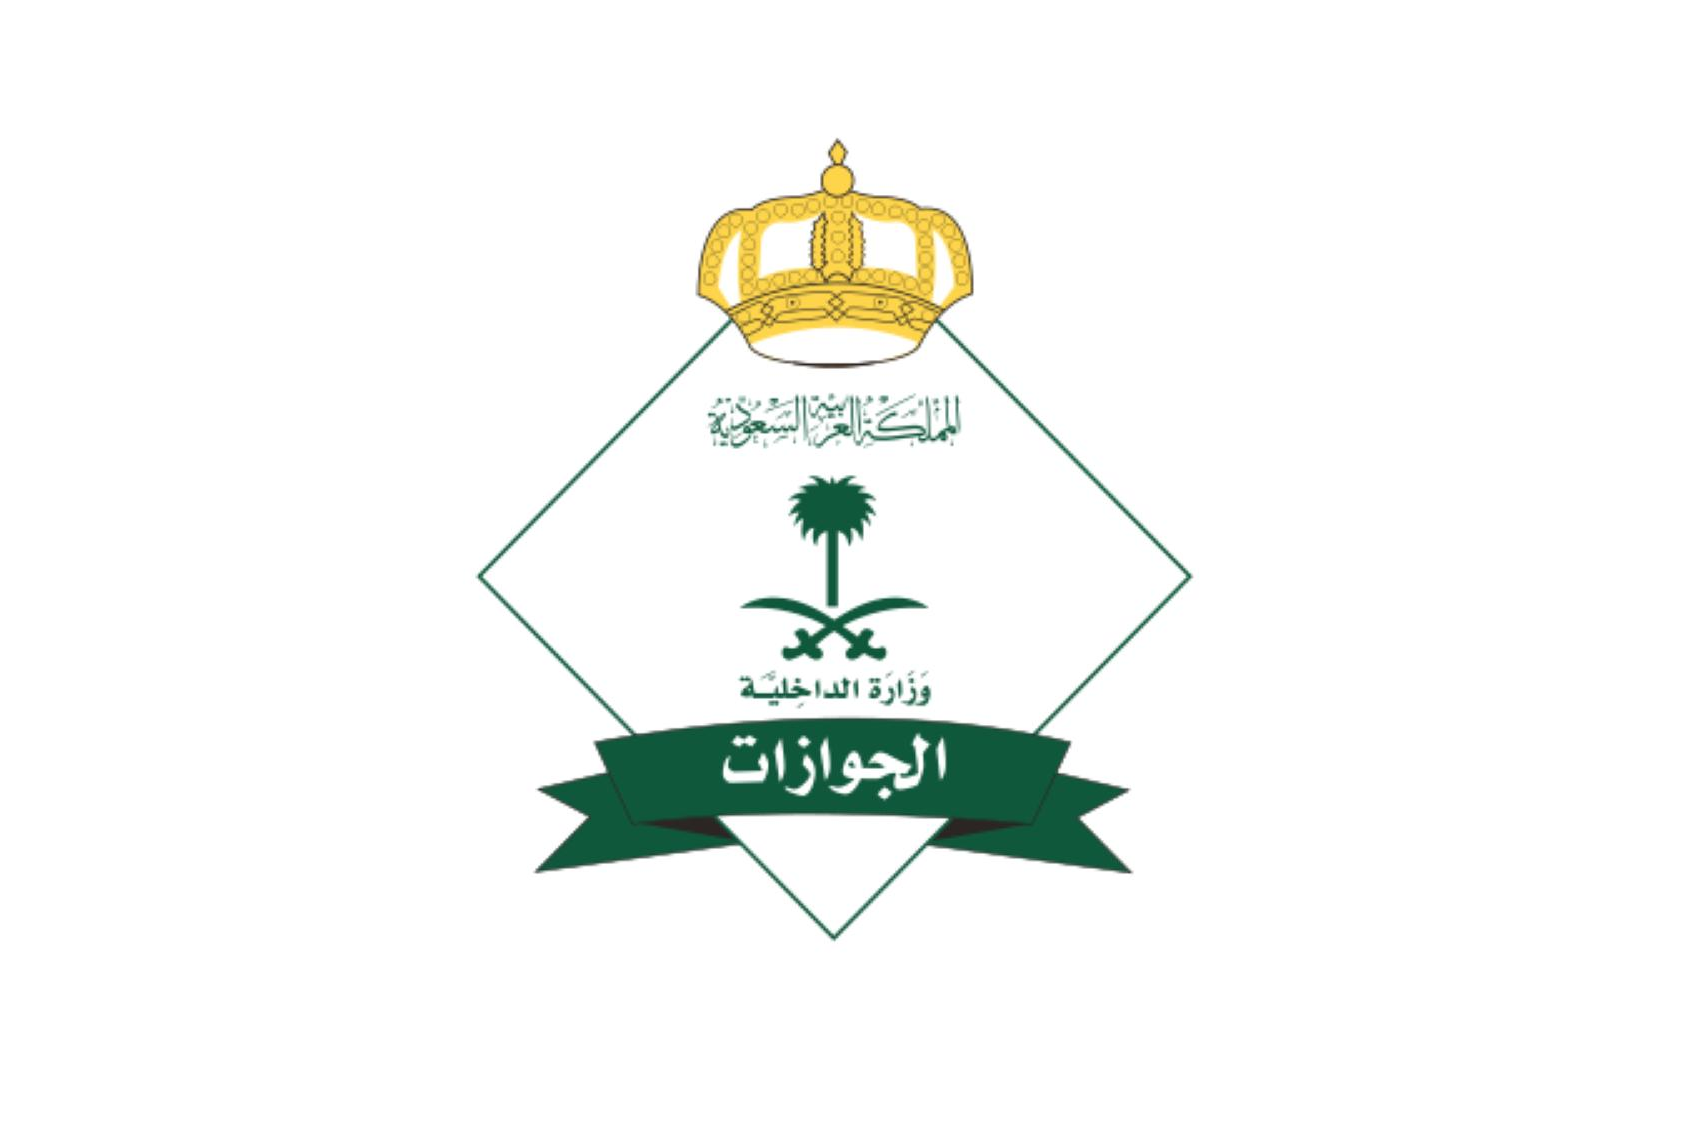 Jawazat Called On Expats To Cancel Their Exit Re Entry And Final Exit Visas To Avoid Fines Expat Visa King Abdulaziz International Airport